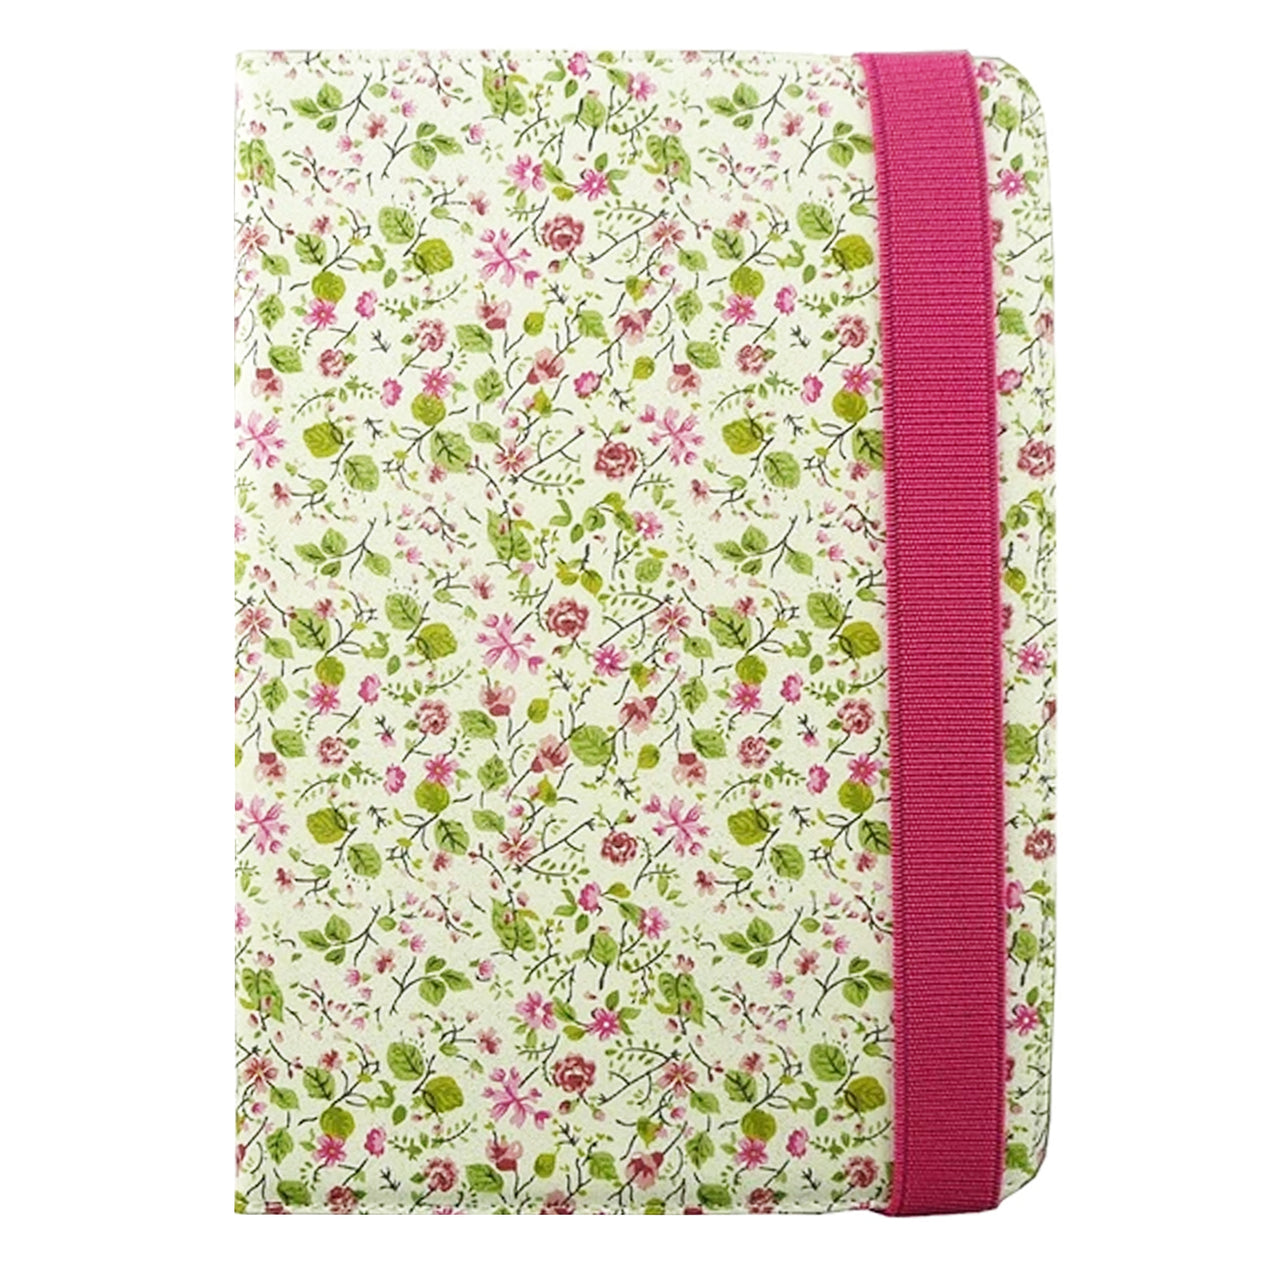 Universal Tablet Case - Pink Green Floral